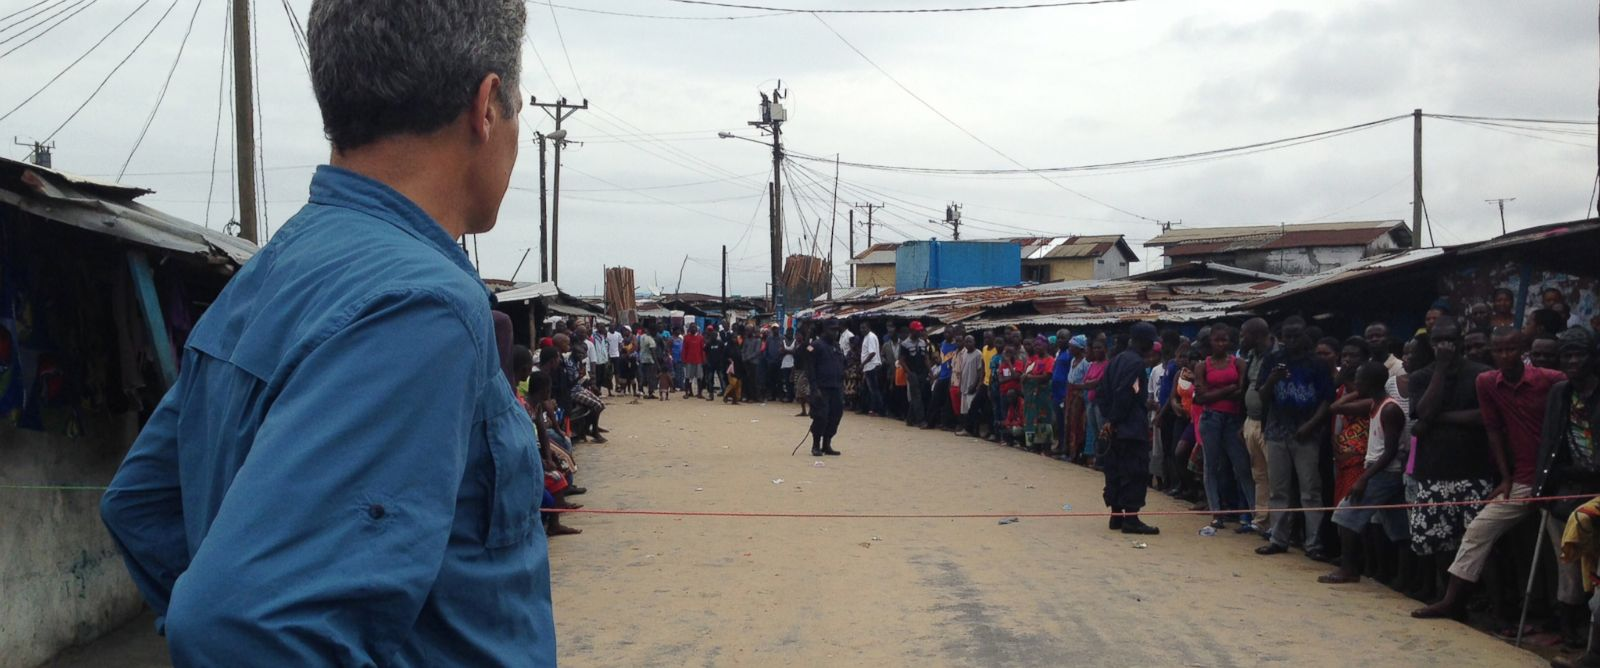 PHOTO: People line the streets of West Point, a slum at the center of an Ebola outbreak in Monrovia, Liberia on Aug. 27, 2014.